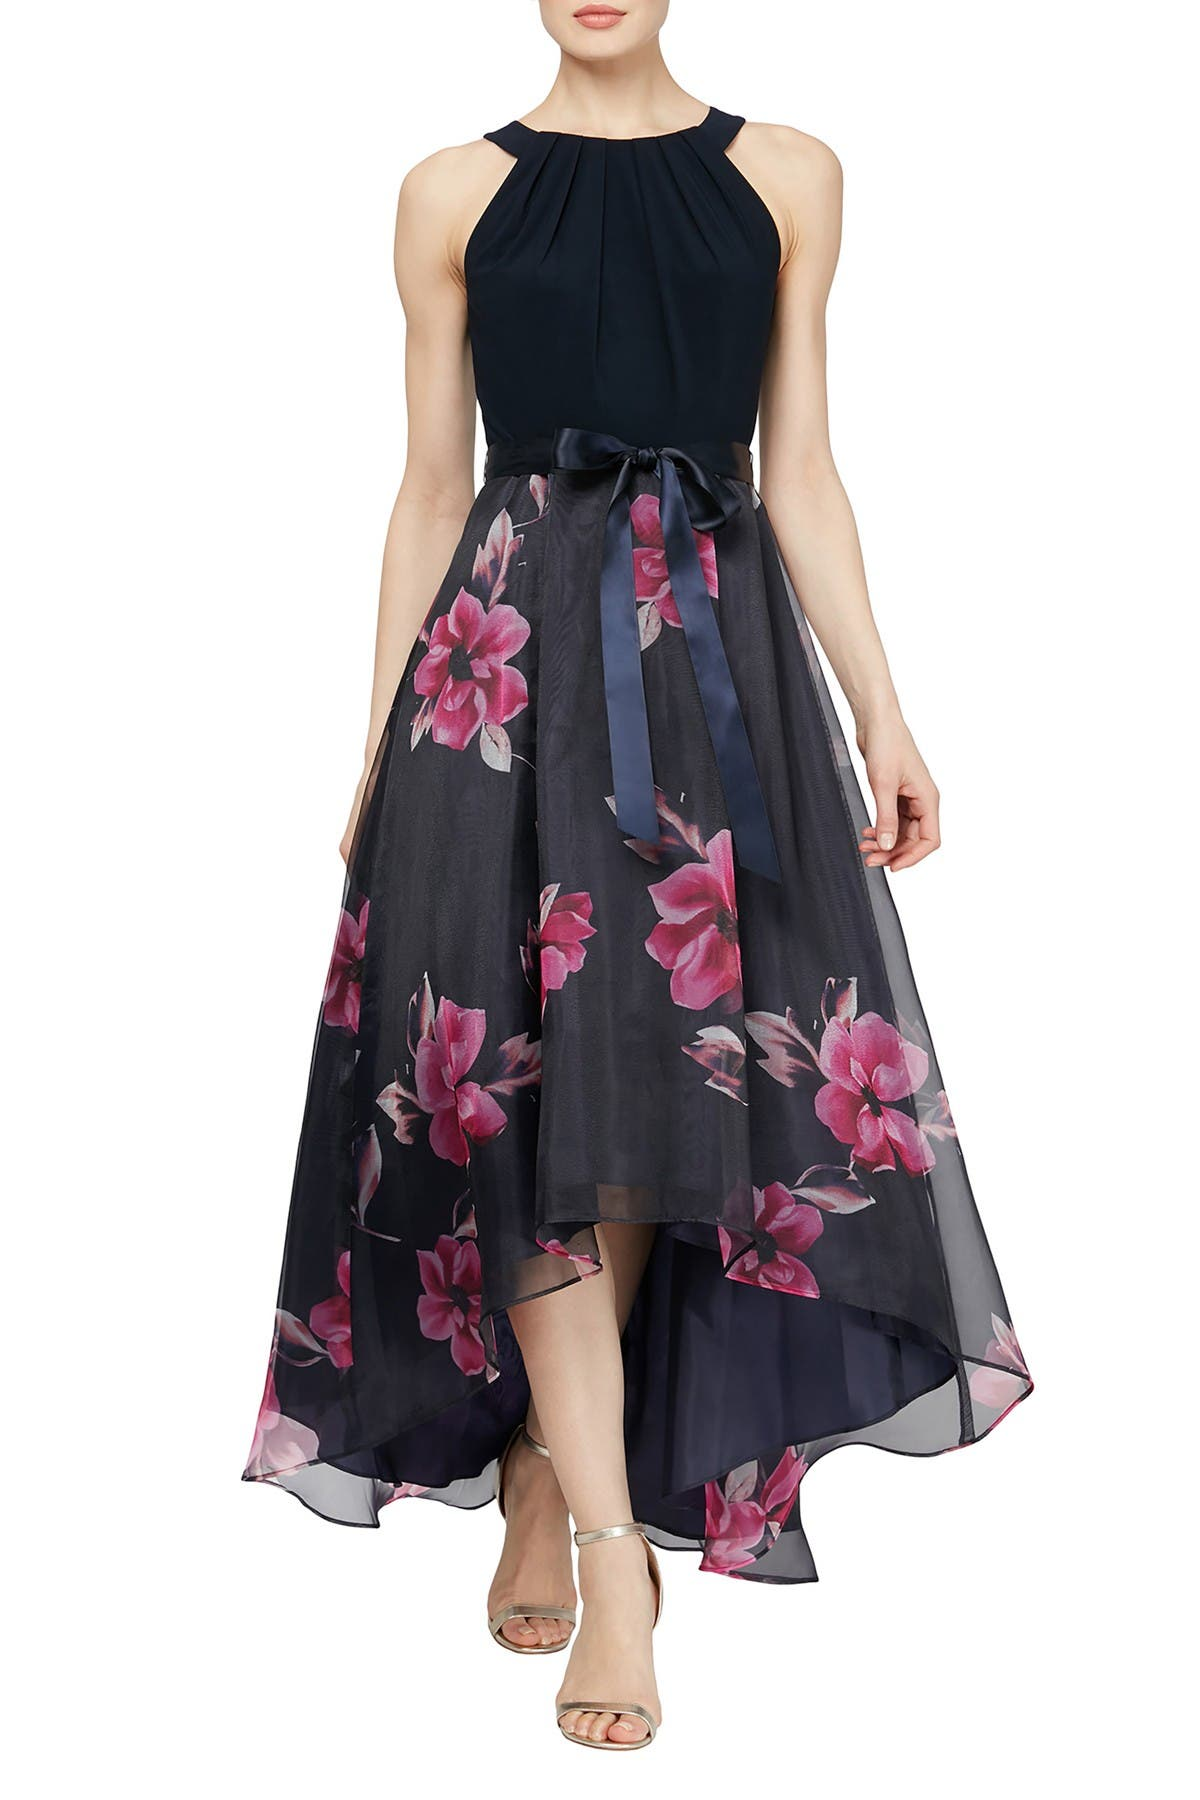 Image of SLNY Floral High/Low Skirt Maxi Dress